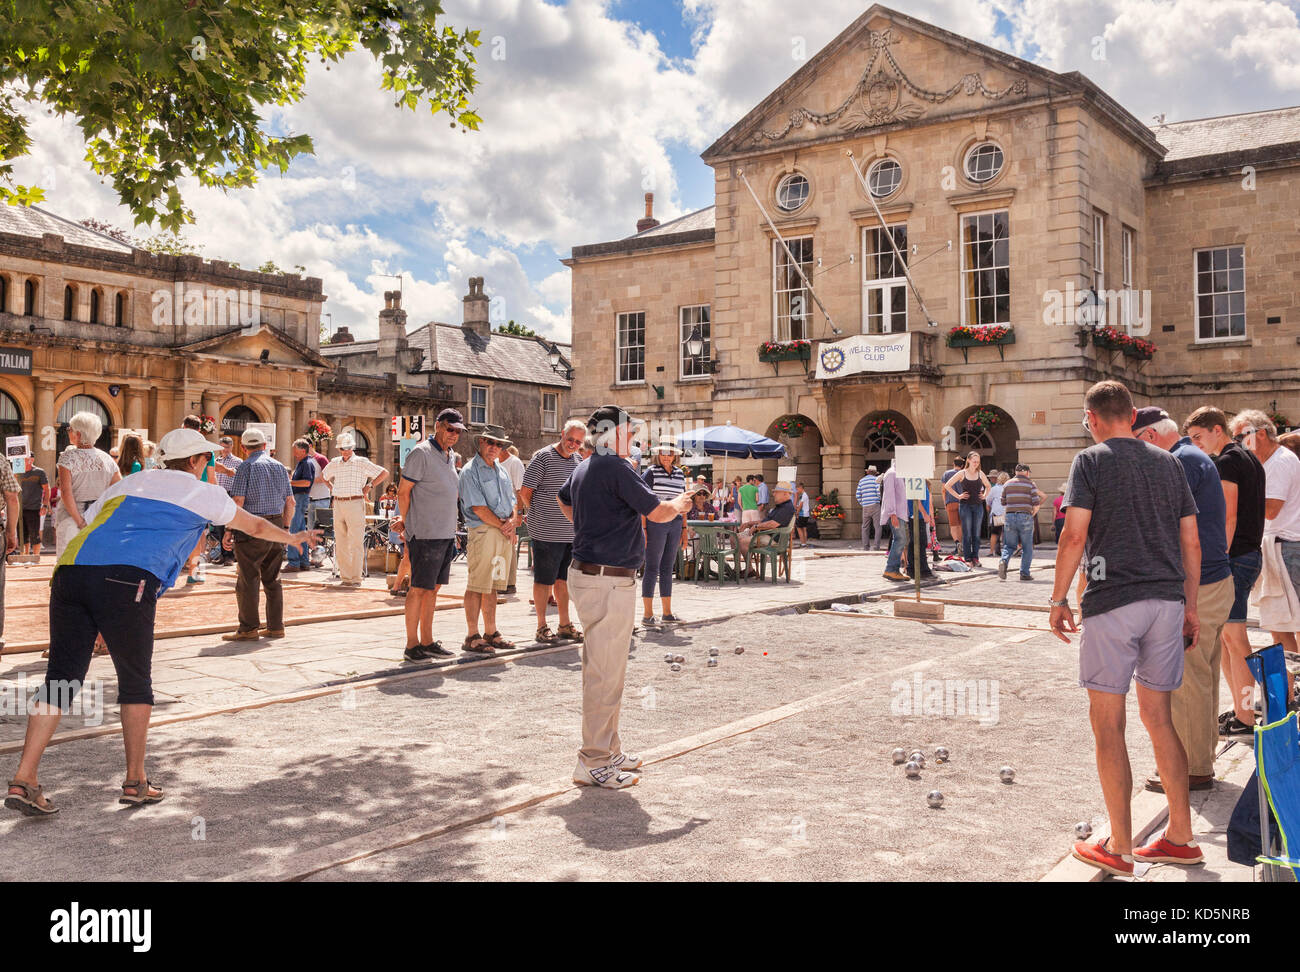 9 July 2017: Wells, Somerset, England, UK - Annual Charity Boules Tournament, organised by the Rotary Club. - Stock Image